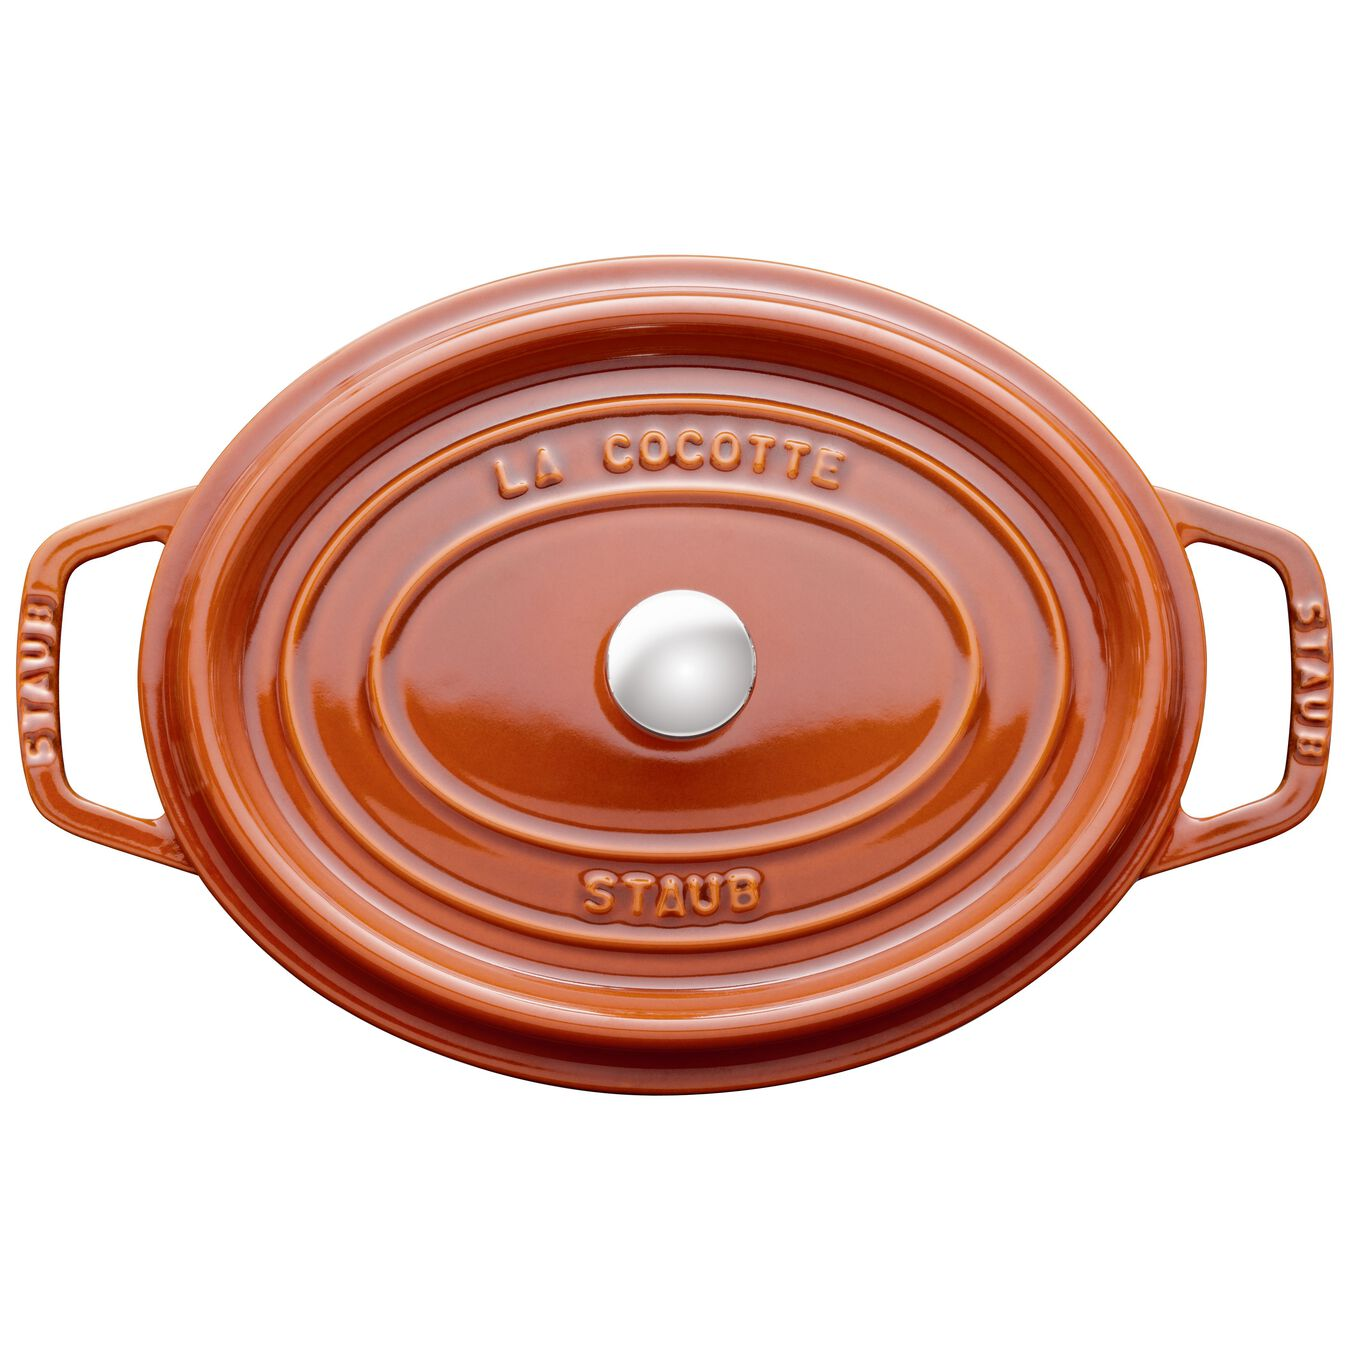 Cocotte 31 cm, oval, Zimt, Gusseisen,,large 2